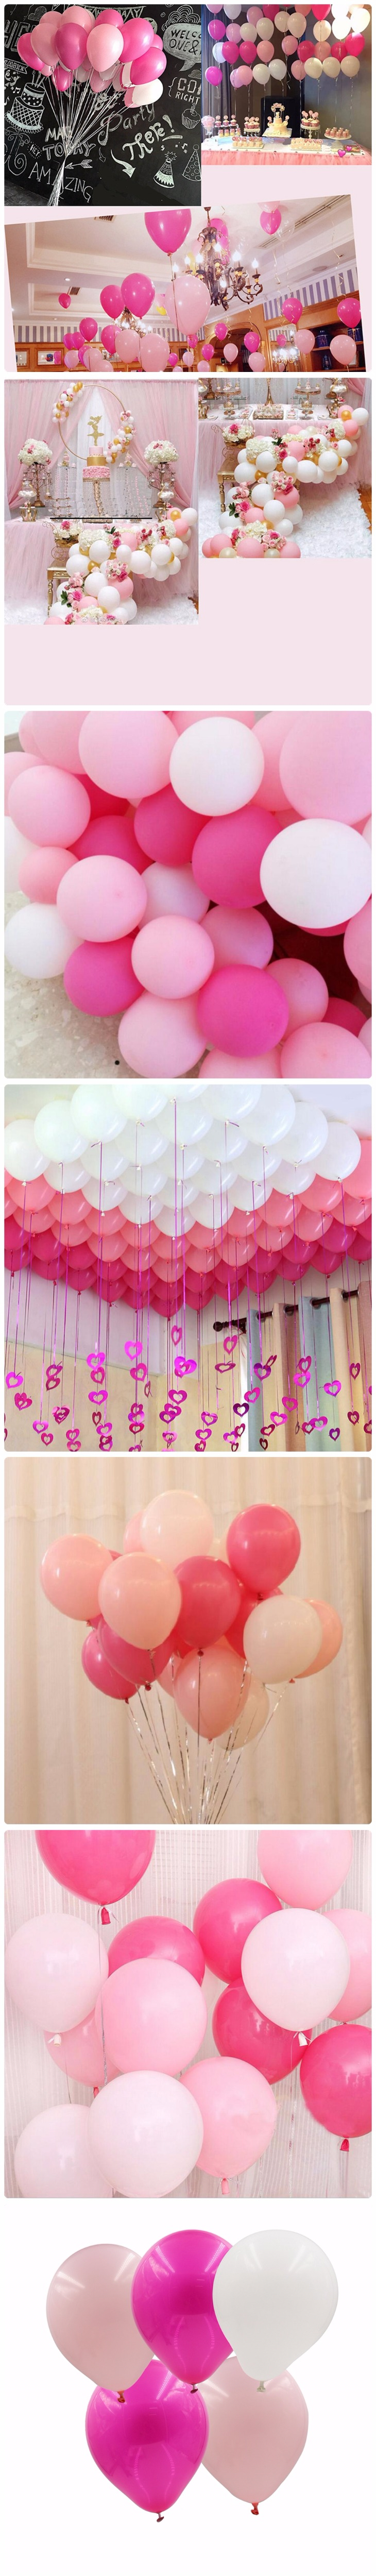 30PCS 10inch 3 Colors Balloons Team Bride Latex Inflatable Balloon for Home Wedding Party Decoration Bachelorette Party Supplies 11